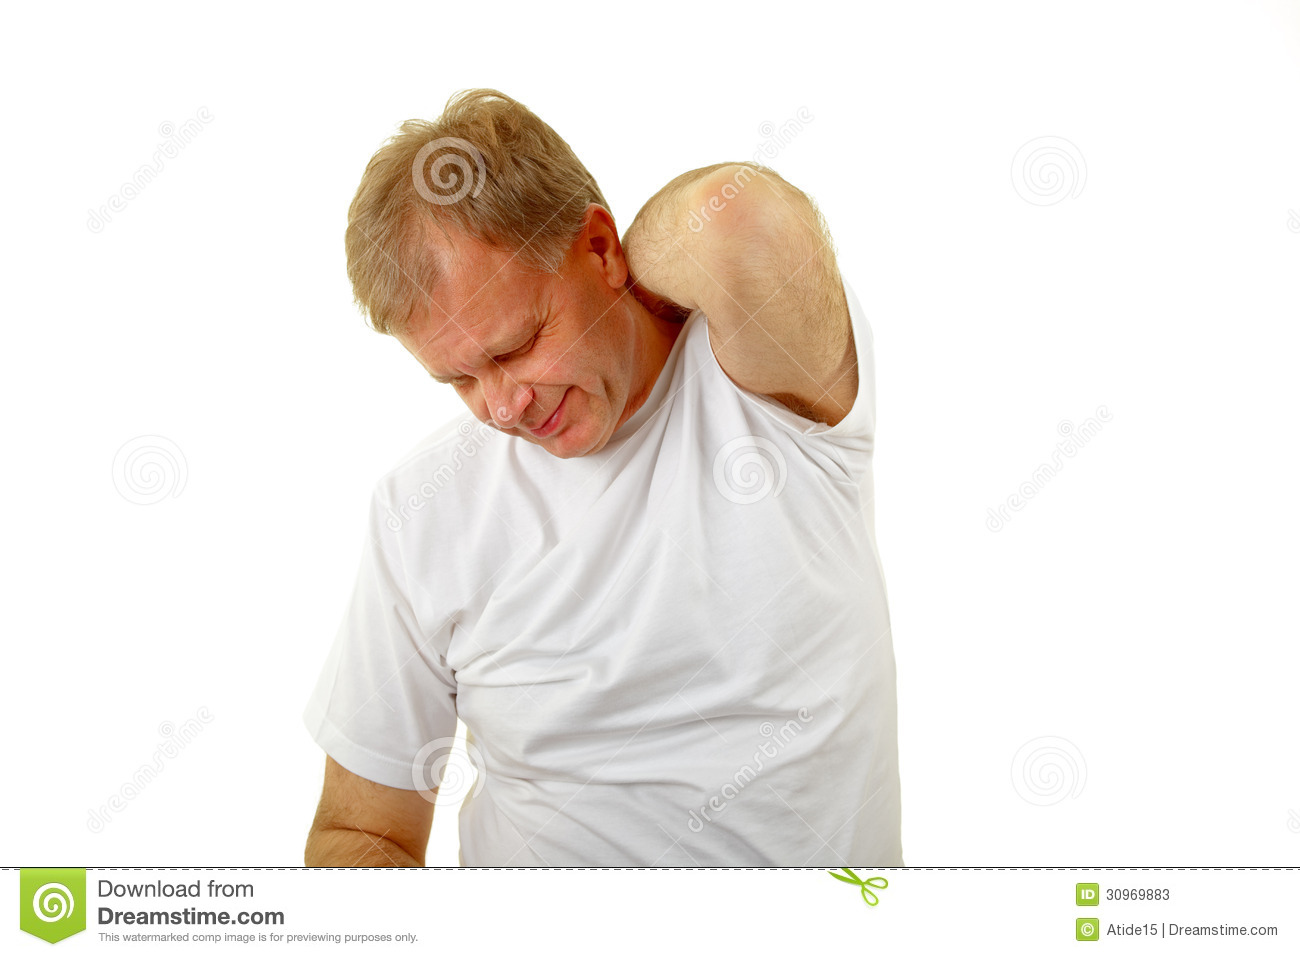 Itching Stock Photos - Image: 30969883